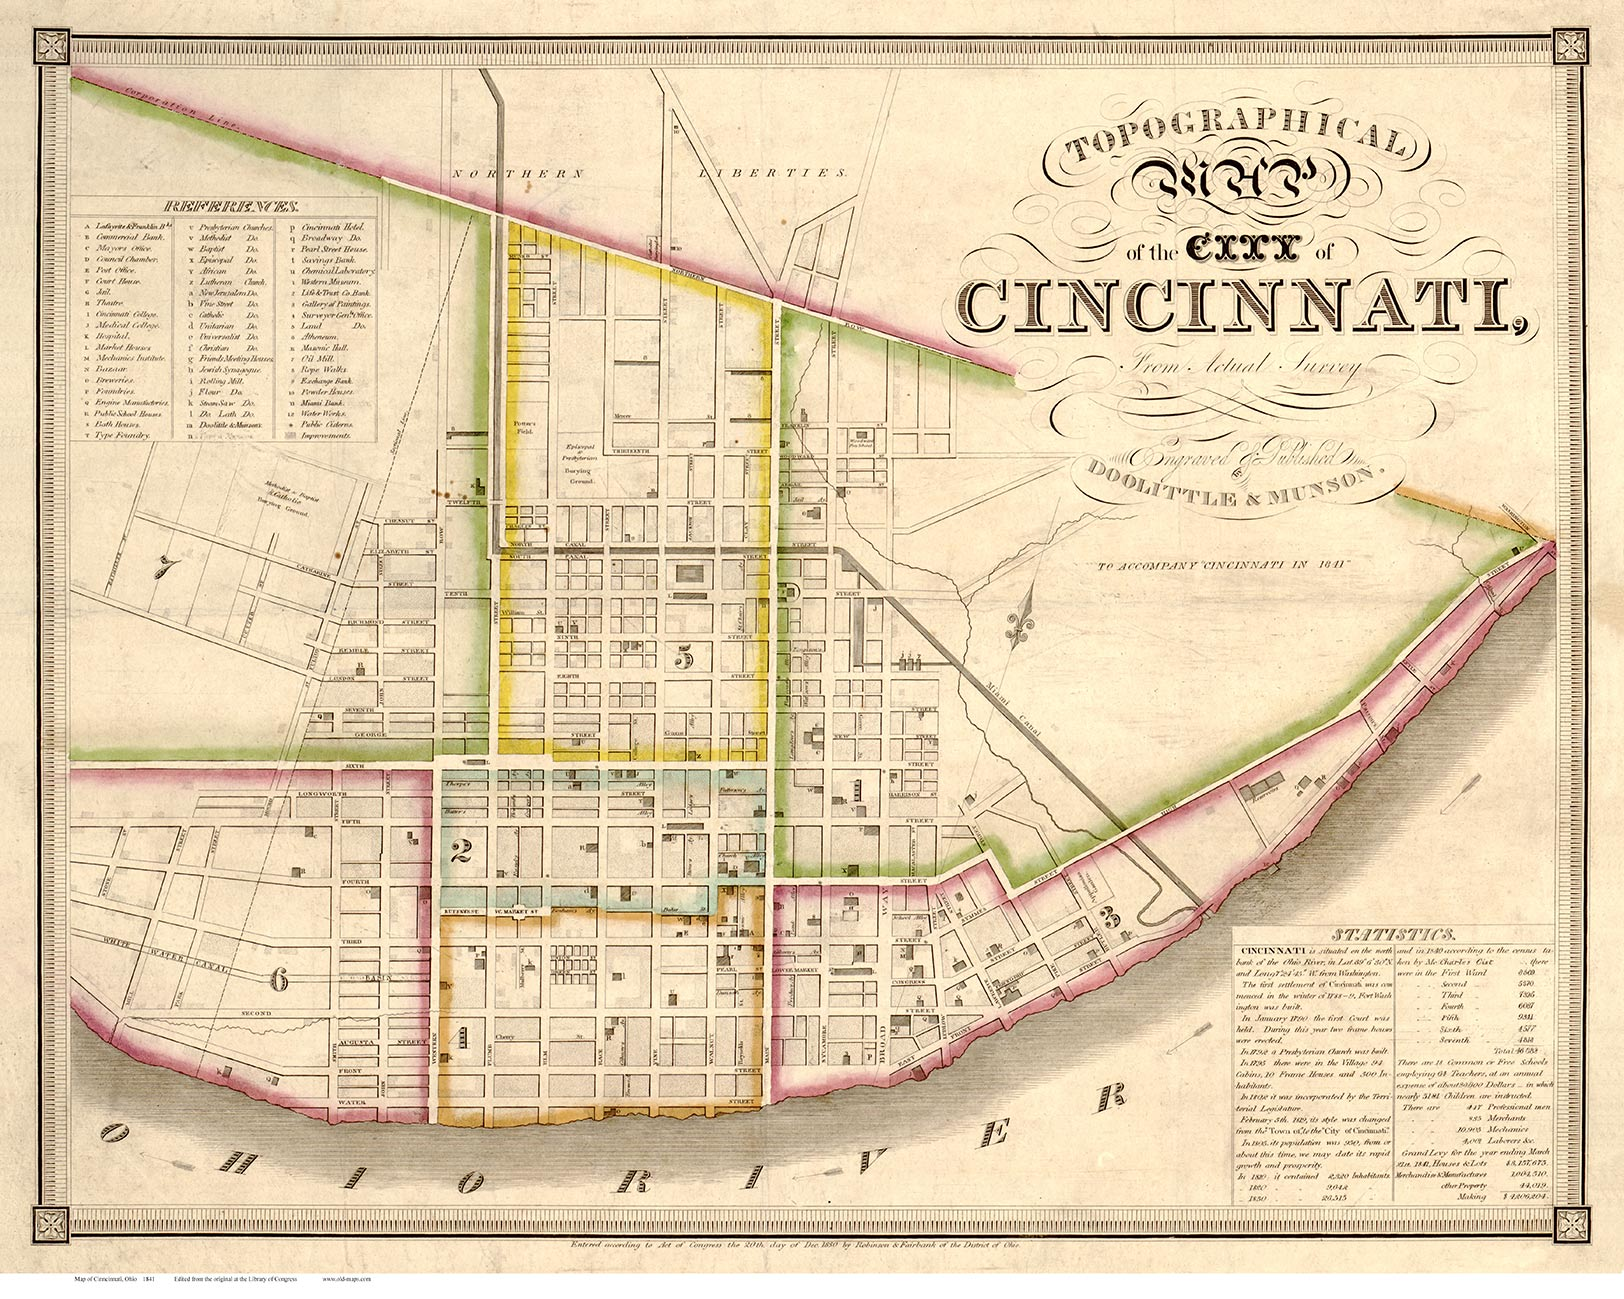 Cincinnati 1841 Doolittle & Munson - Old Map Reprint - Ohio Cities on ohio county map with major cities, large maps of northern ohio, large maps of northeast ohio, large map of missouri, large map of london, large map of tennessee, midwest map with cities, northeast ohio county map with cities, large maps of columbus ohio, large map of south carolina, morrow county ohio map cities, large map of montana, ohio map with counties and cities, large map of mississippi, southwestern ohio map with cities, large map columbiana oh, large map of north dakota, large maps of ohio 45140, large map of cincinnati, printable ohio map with cities,